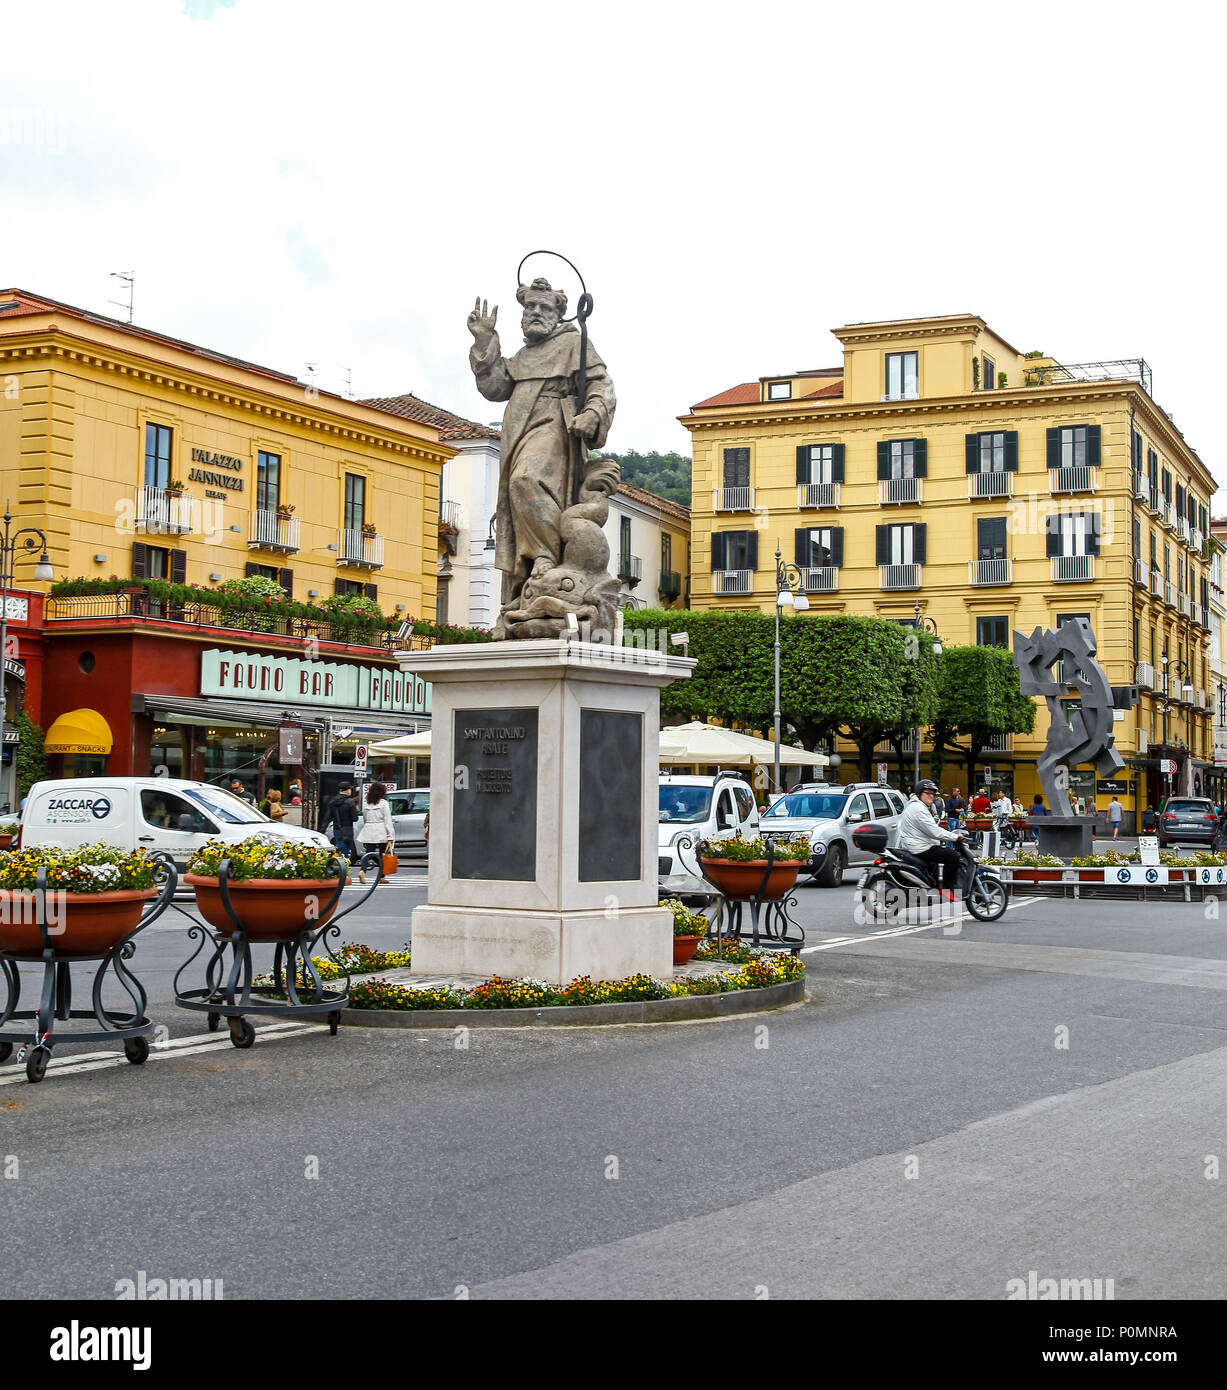 Statue of St. Antonino Abbate in Piazza Tasso, central place and square in the middle Sorrento, Italy, - Stock Image